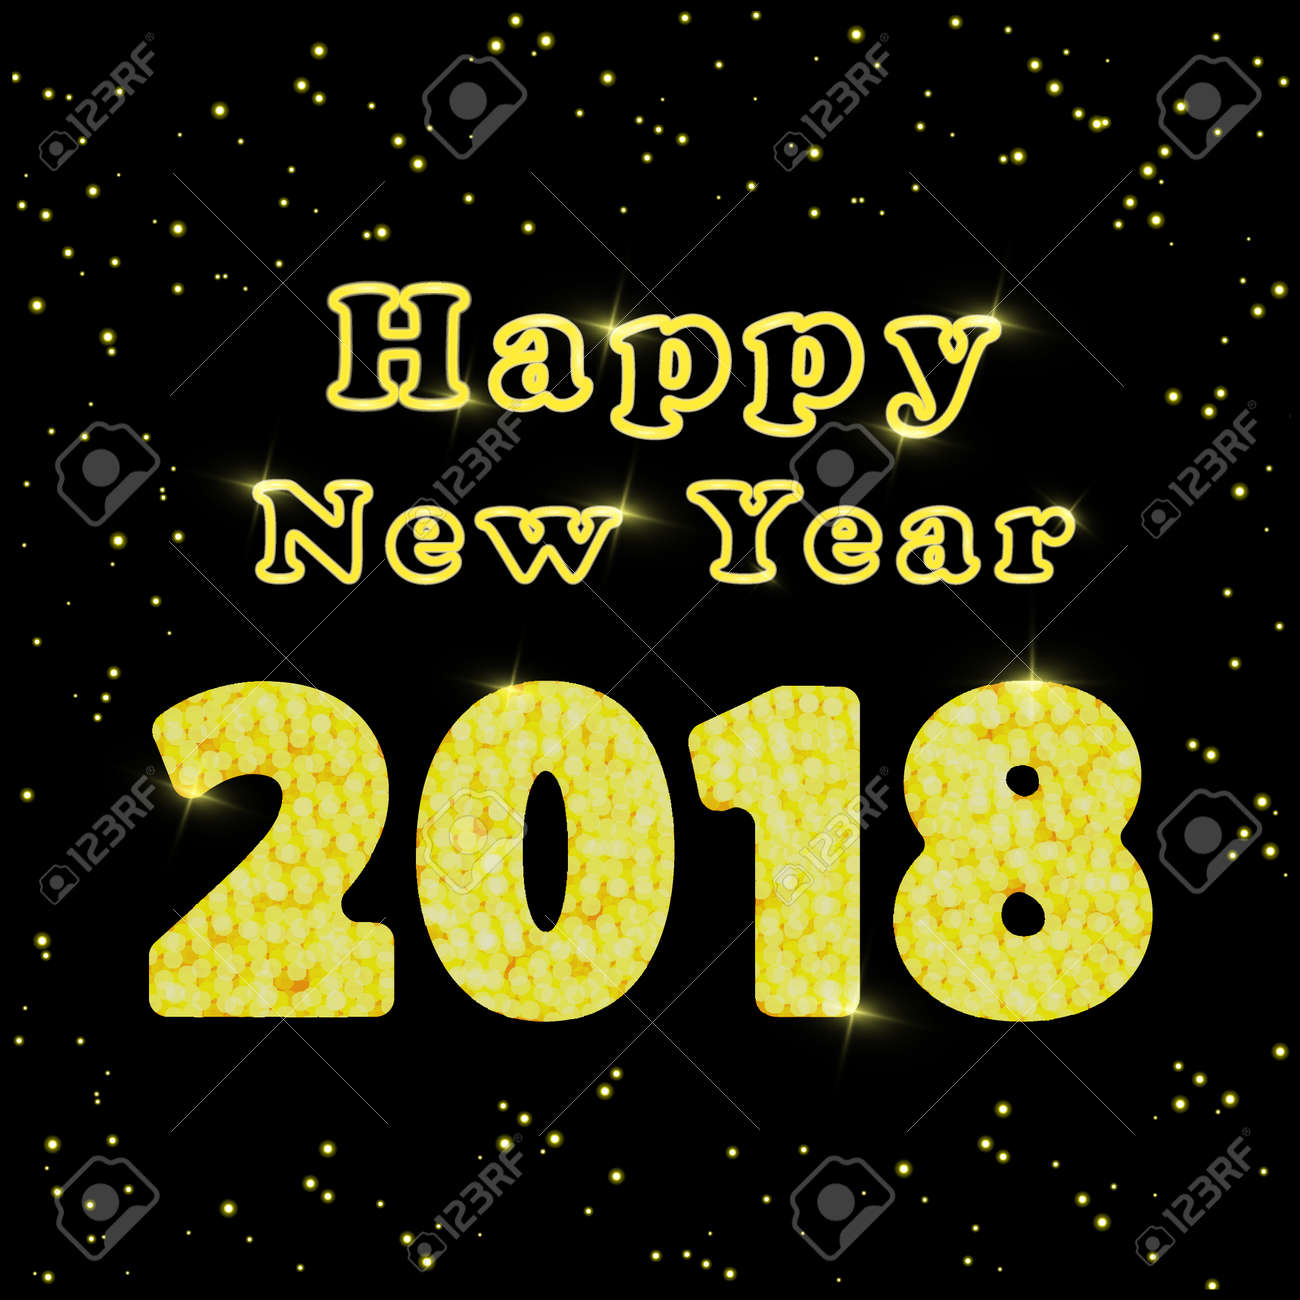 Official congratulations on the New Year 2018 16